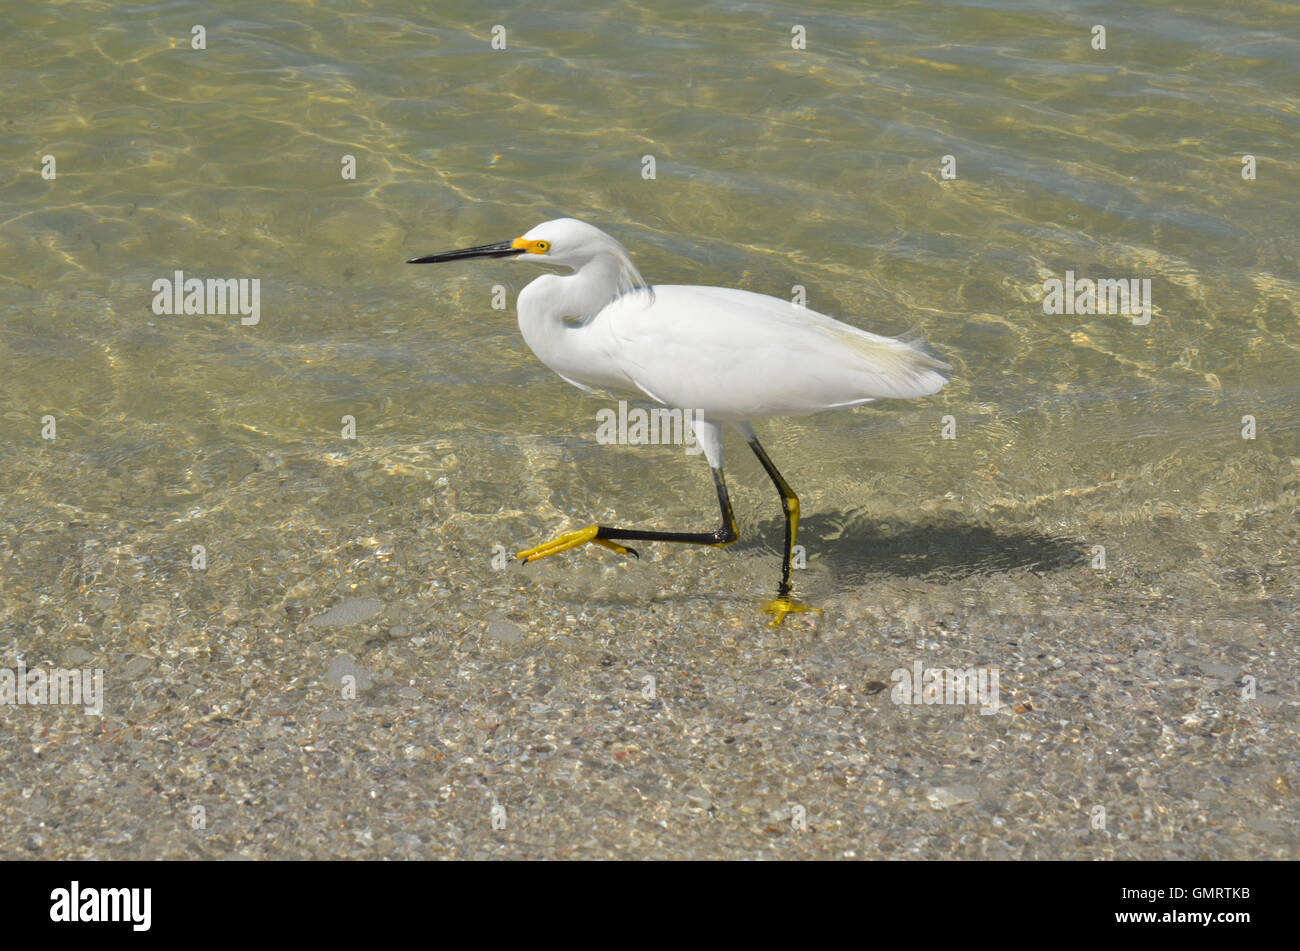 egret walking in shallow ocean water on the beach stock